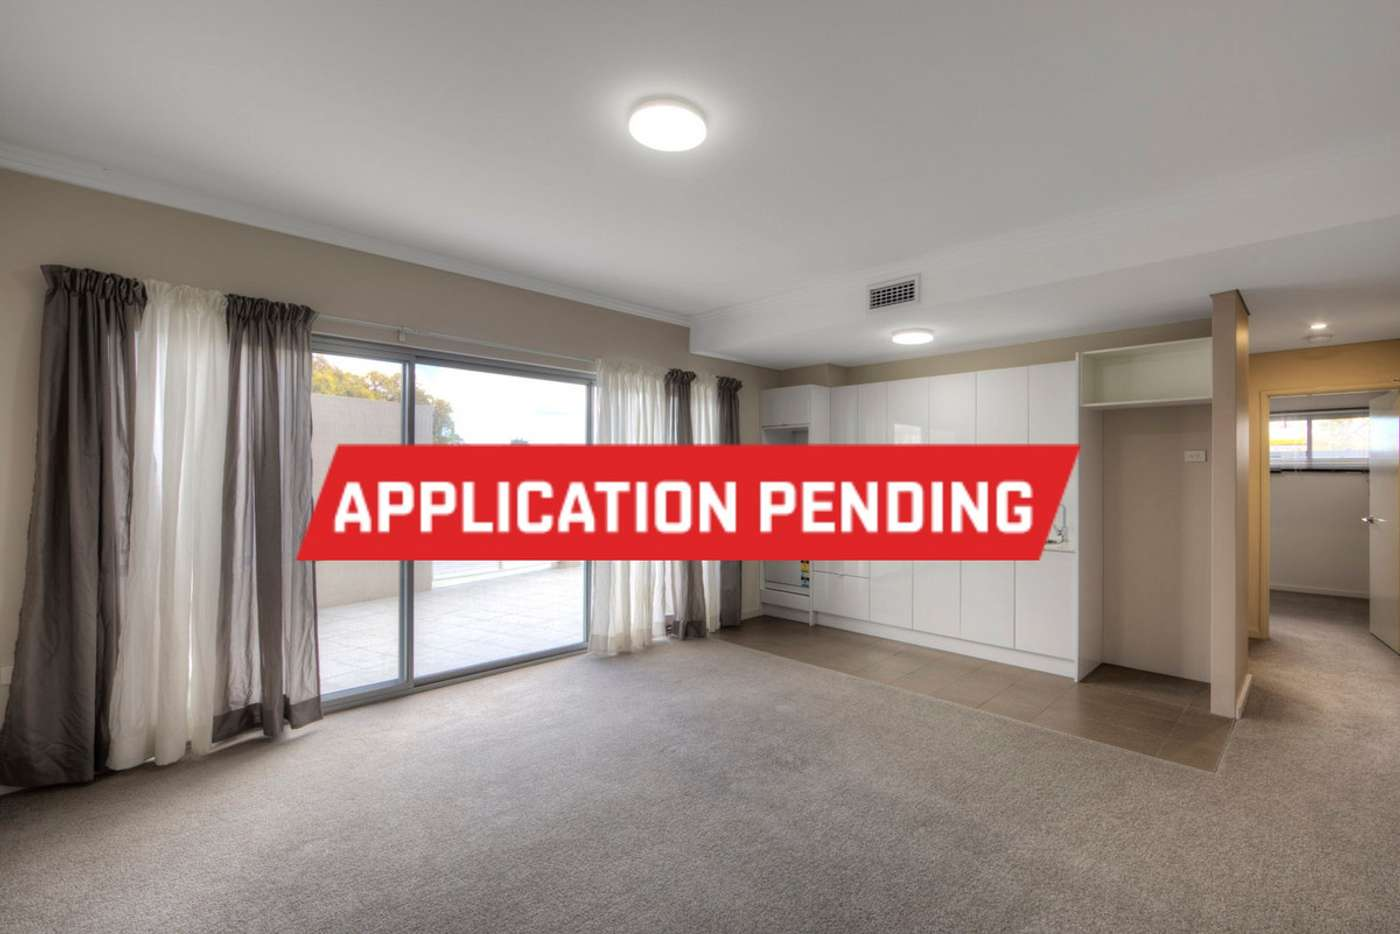 Main view of Homely apartment listing, 1/26 Little Walcott Street, North Perth WA 6006